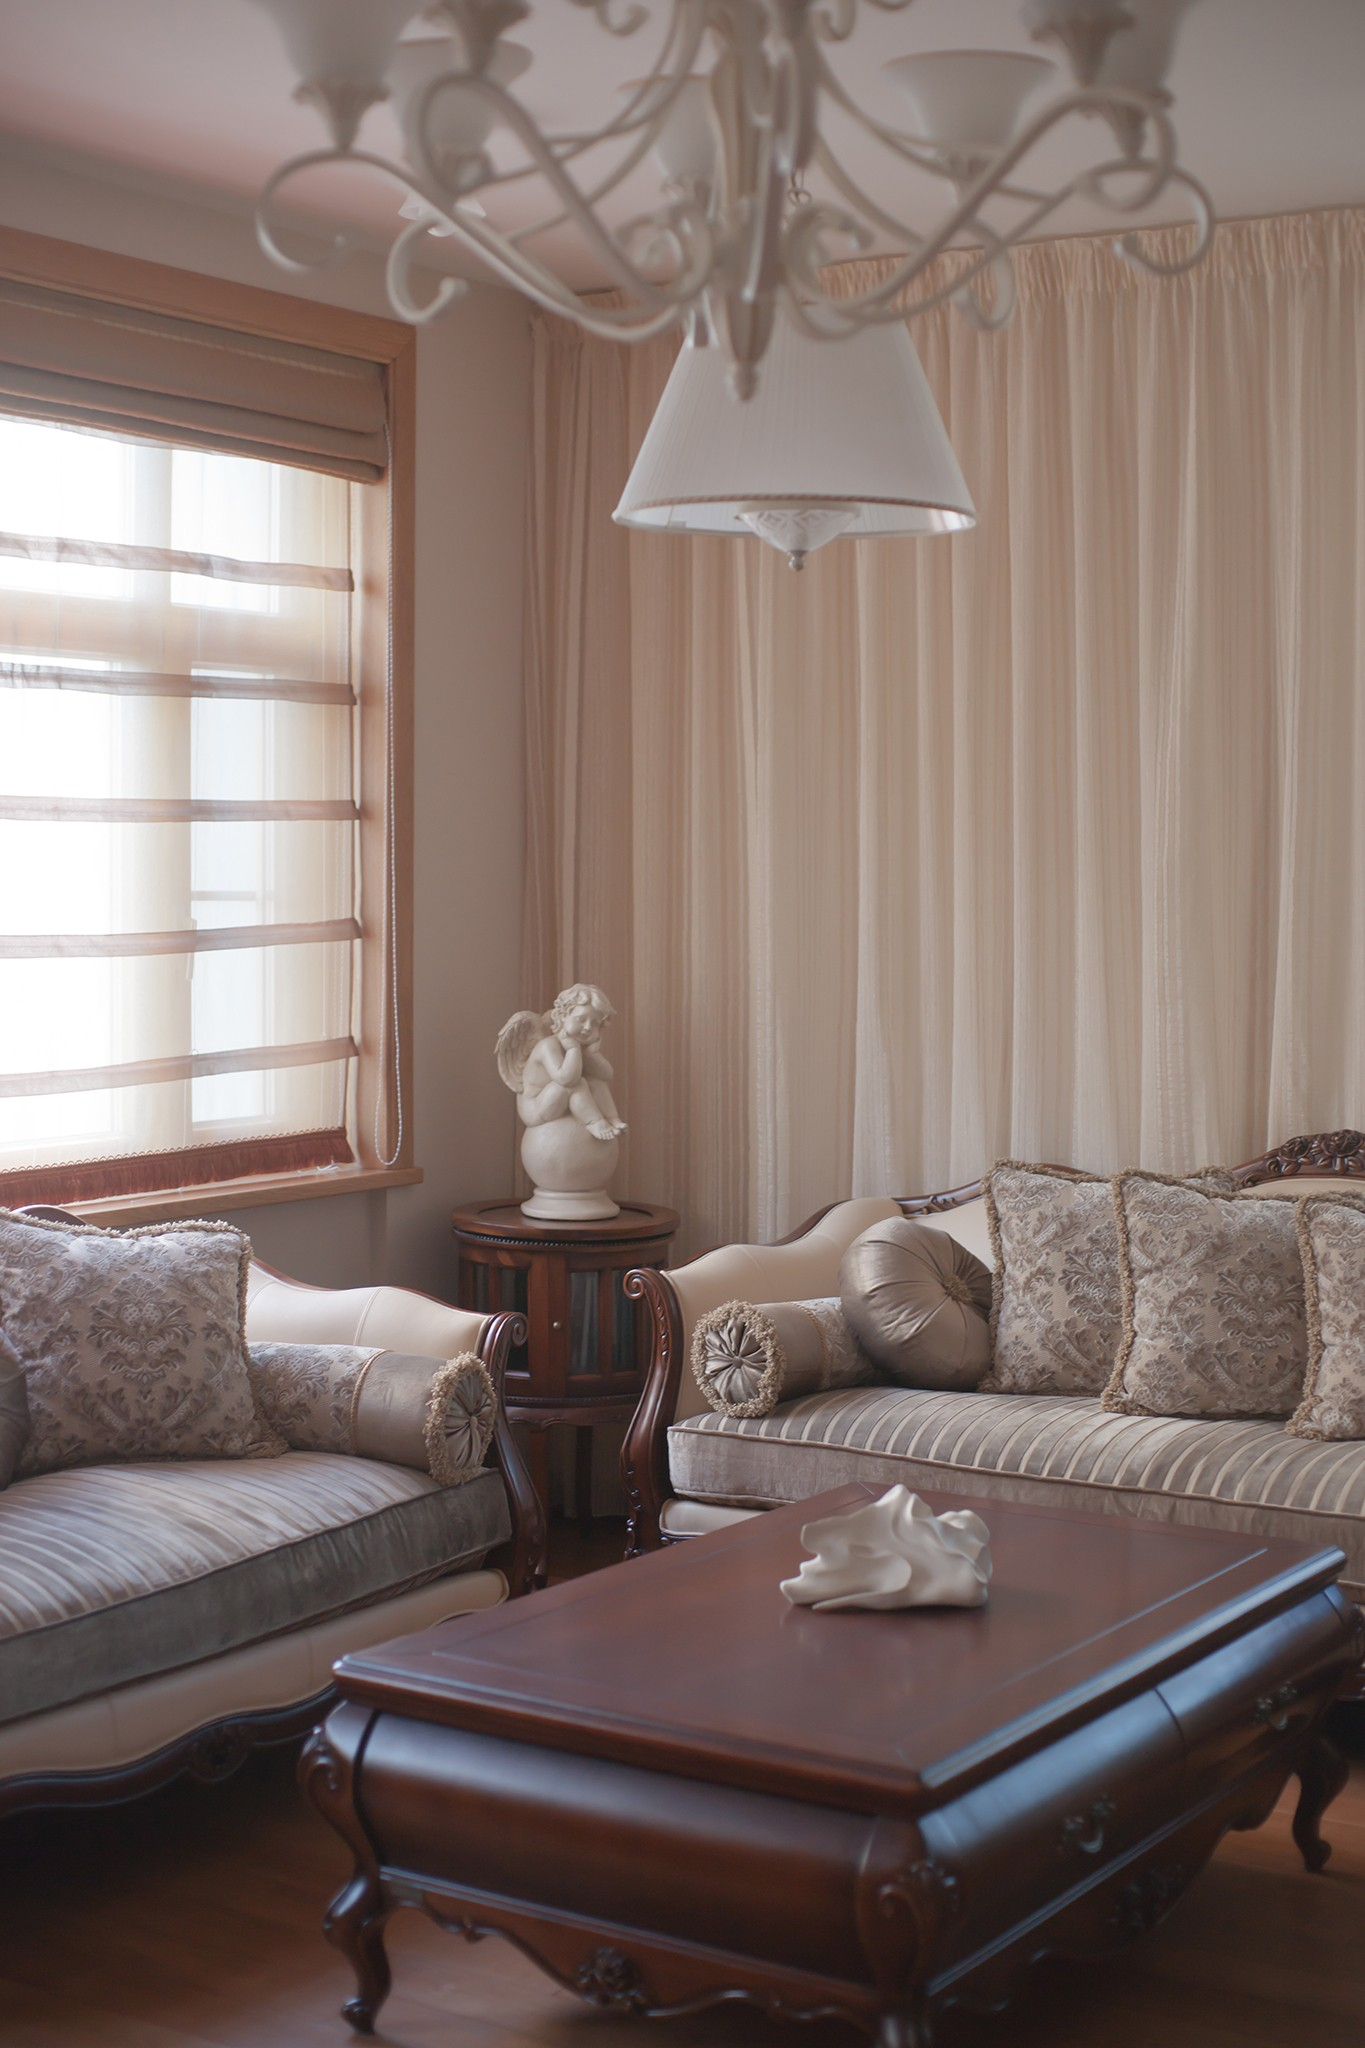 About interior photography